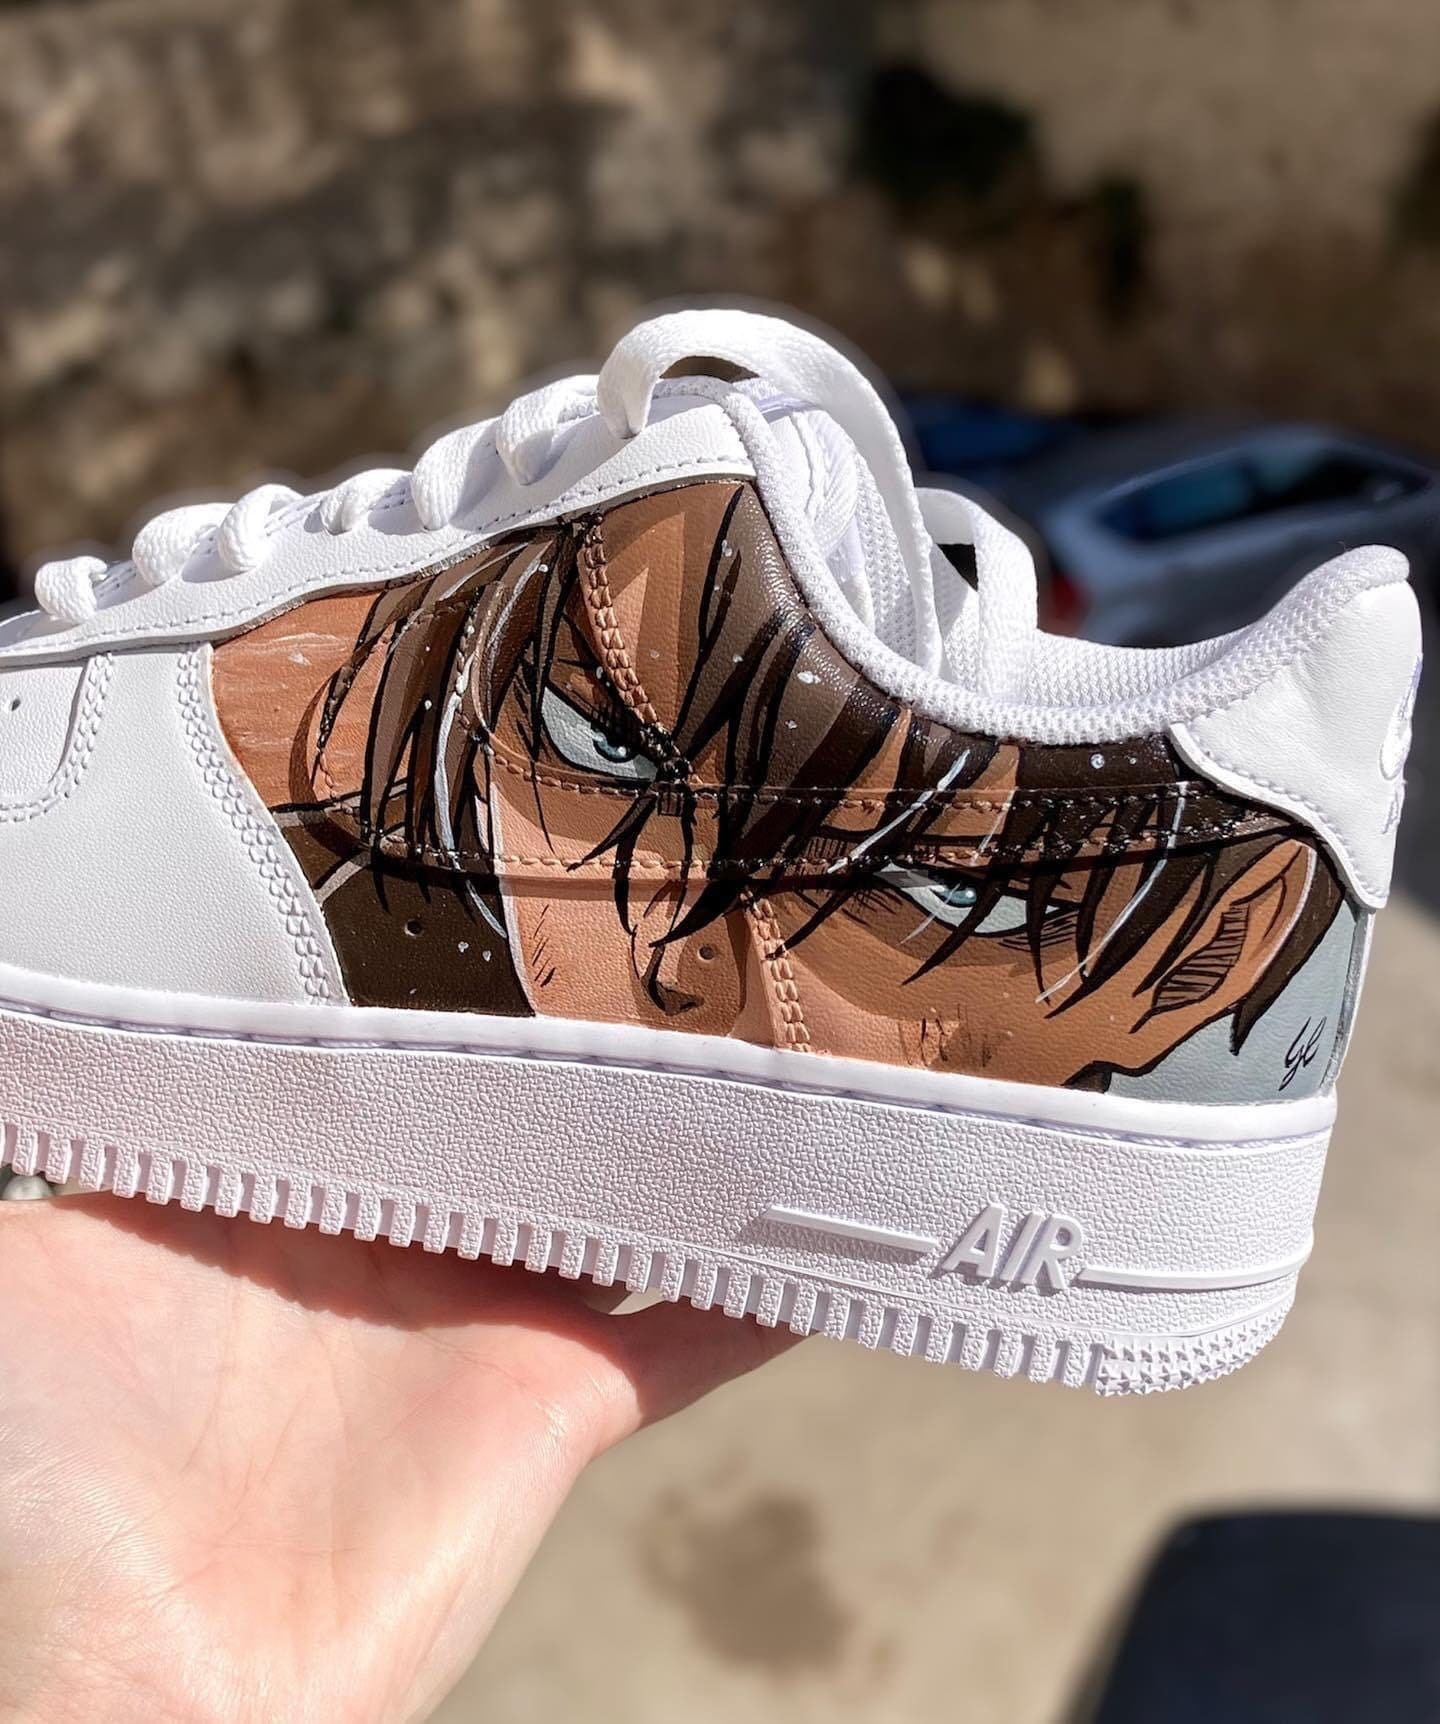 Nike Air Force 1 aot attack of giants